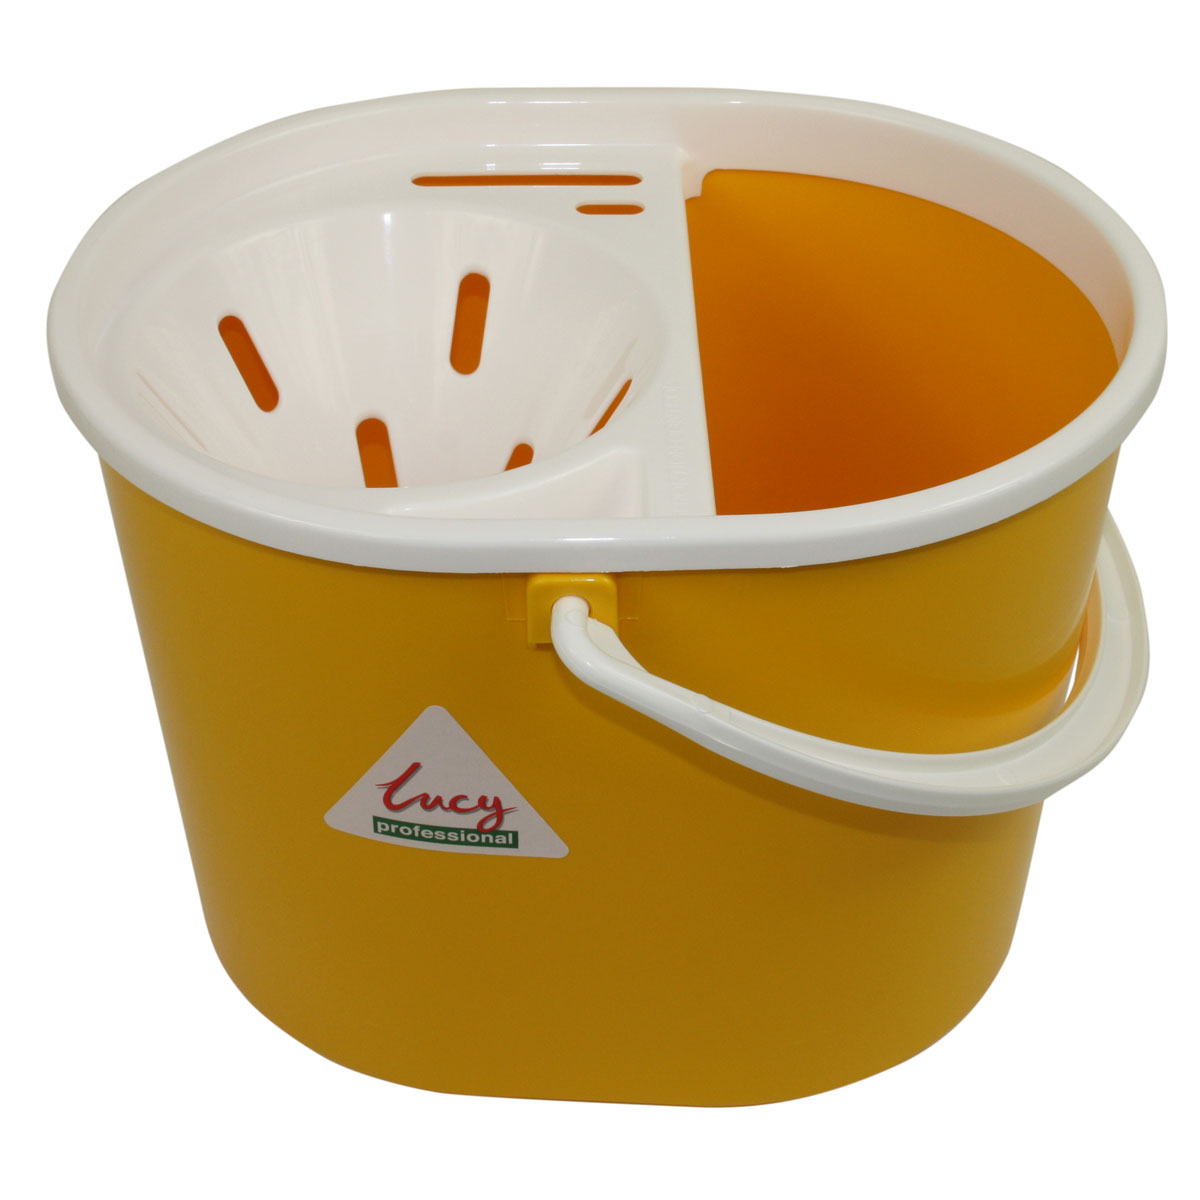 Yellow 8-litre Lucy Oval Mop Bucket with Sieve